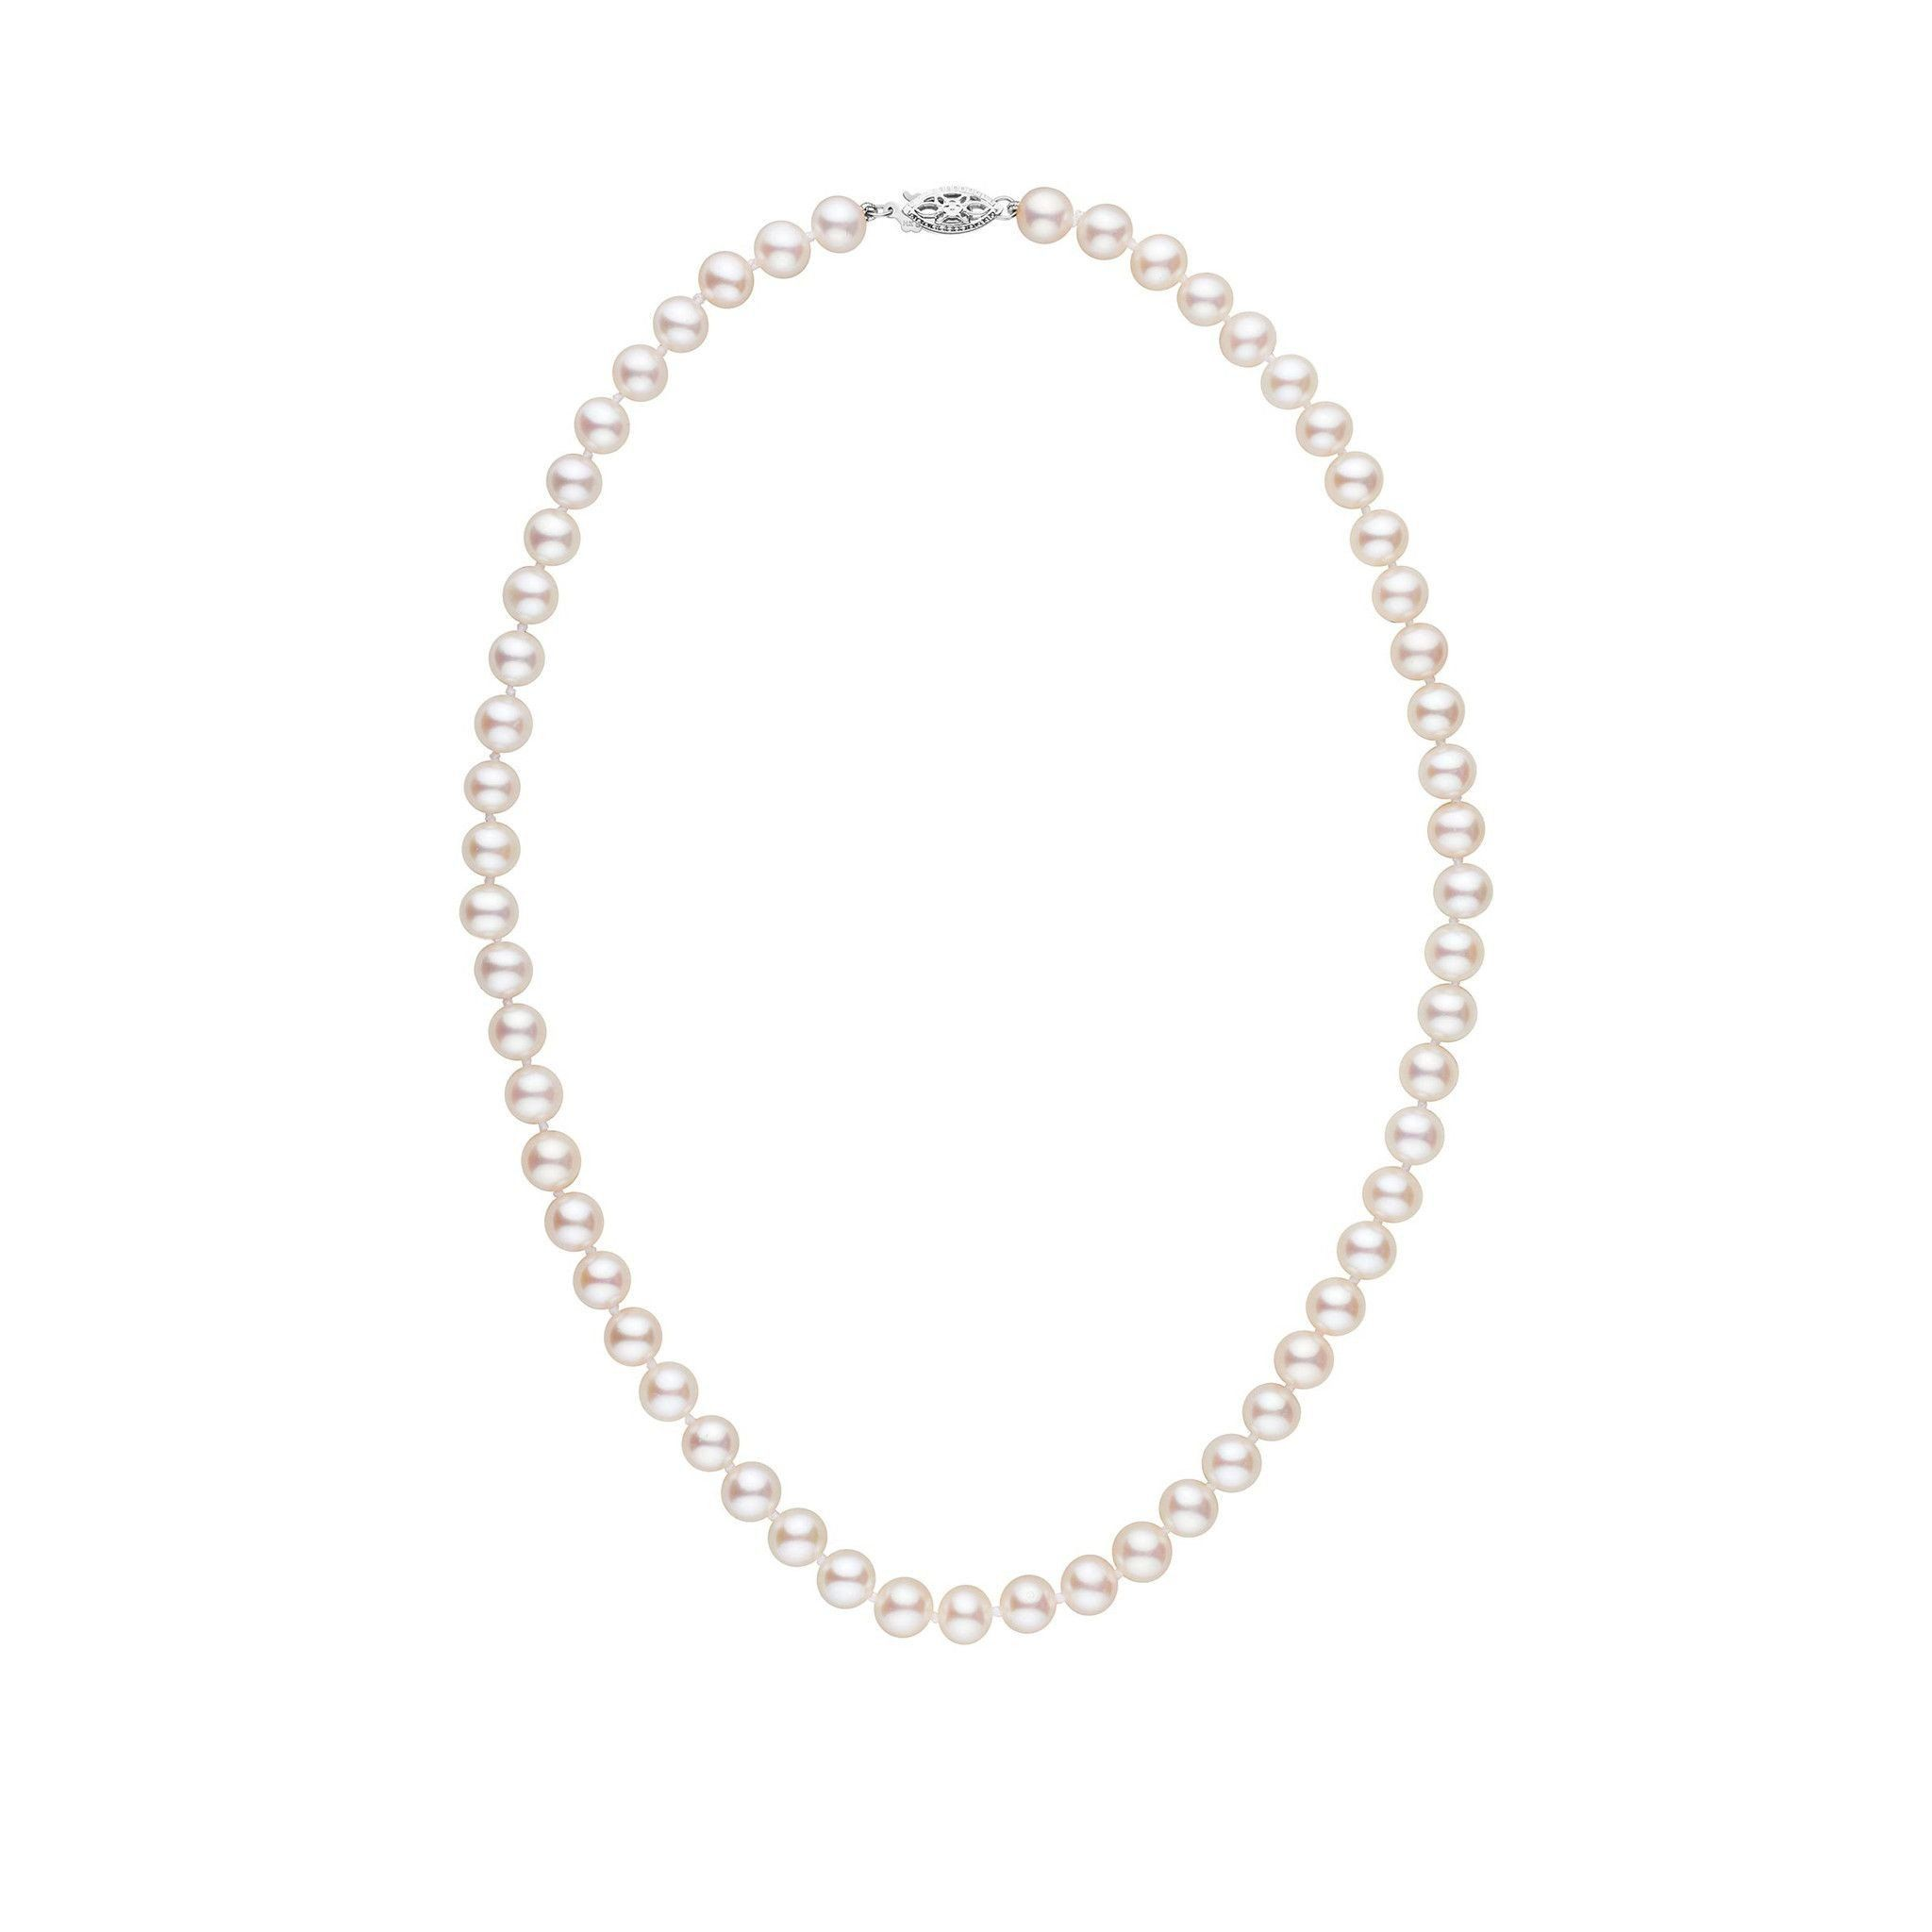 6.5-7.0 mm 16 Inch AA+ White Freshwater Pearl Necklace